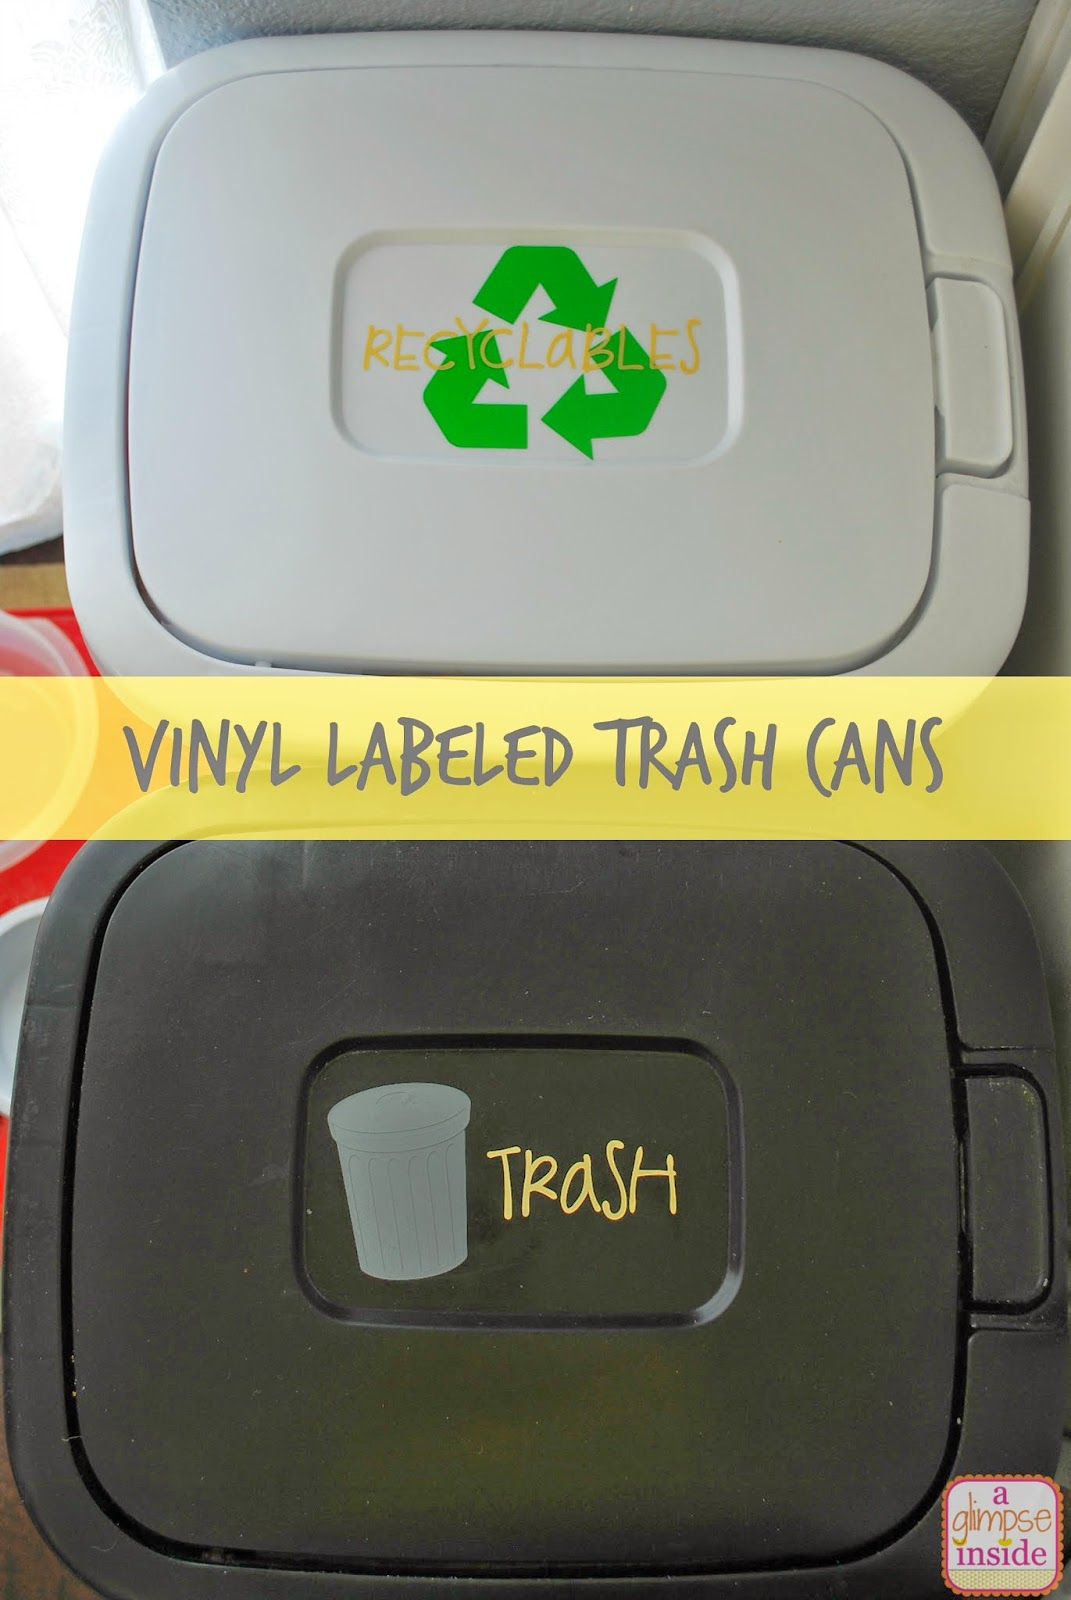 http://www.aglimpseinsideblog.com/2014/04/easy-vinyl-trash-can-labels.html